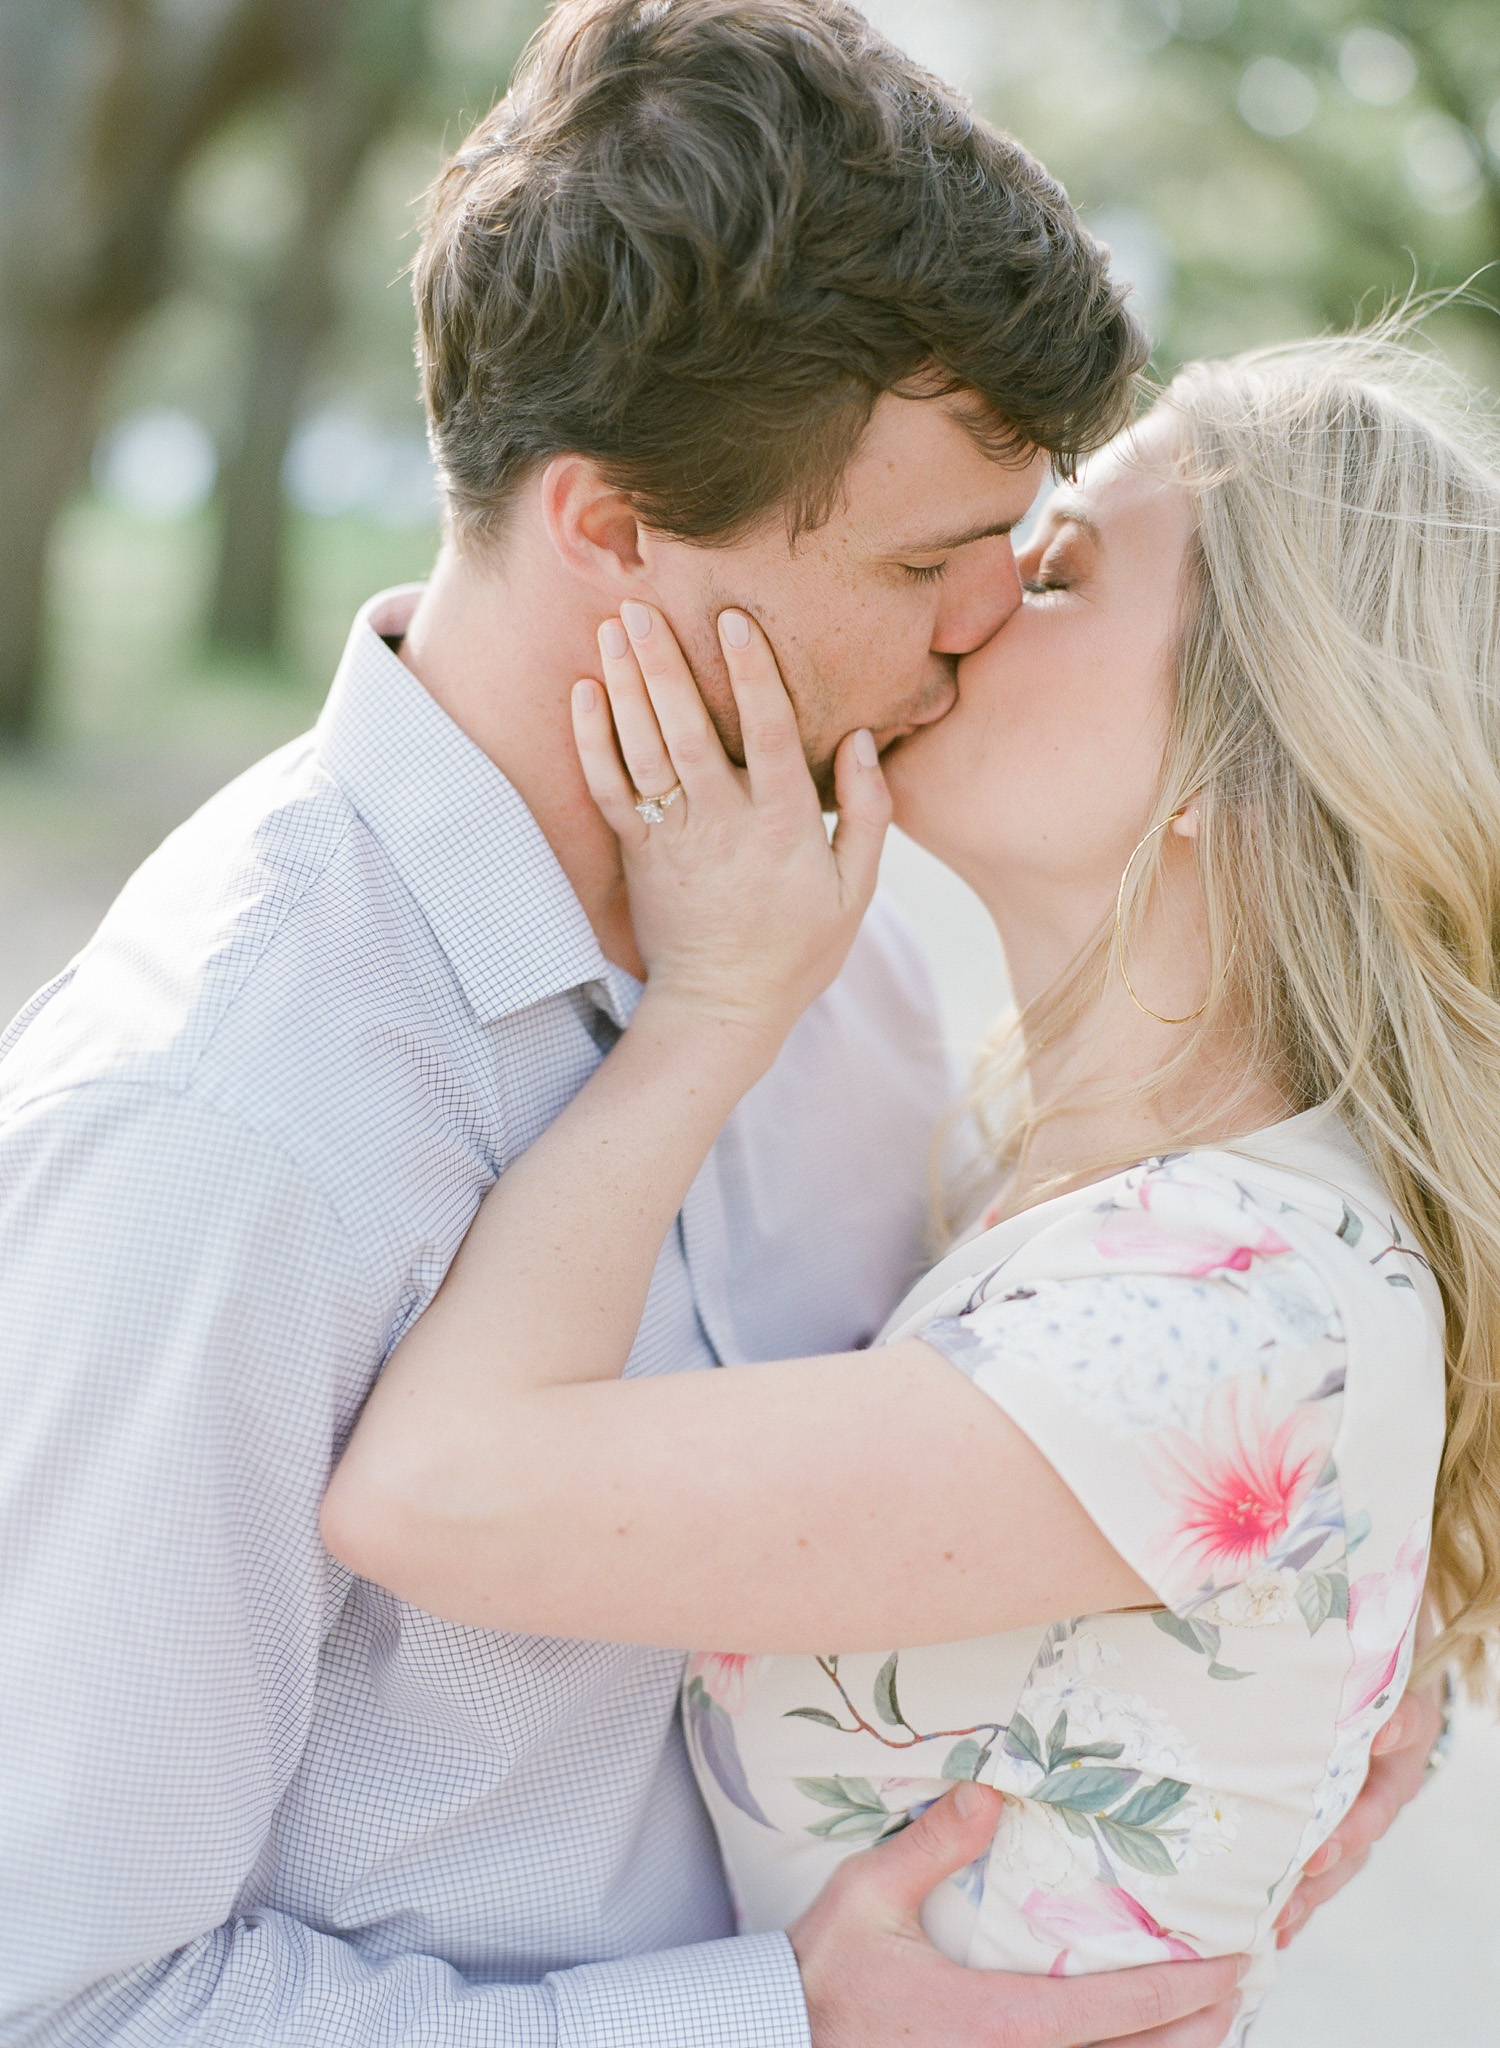 Charleston-Engagement-Session-Photos-82.jpg